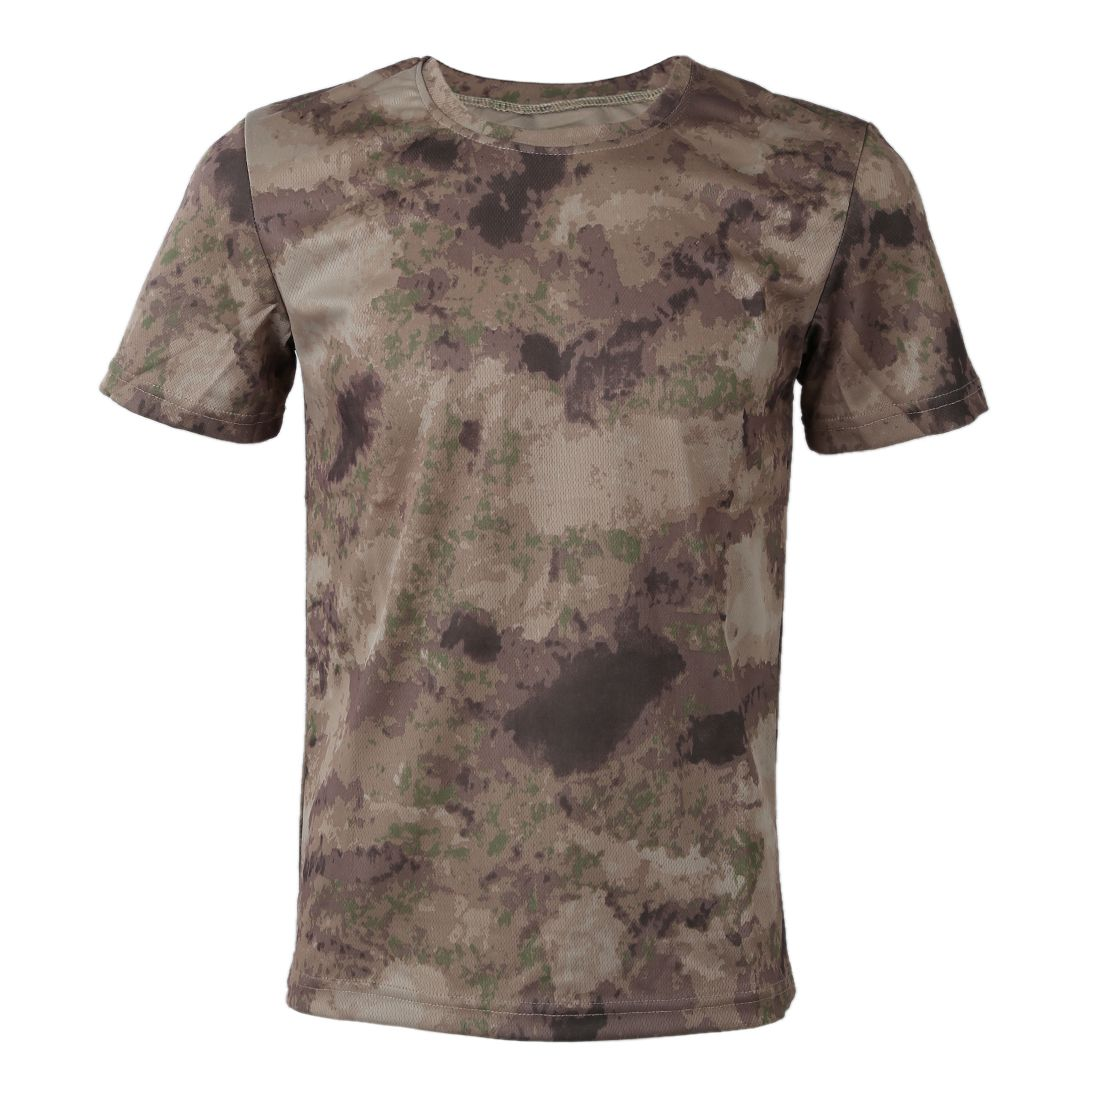 New Outdoor Hunting Camouflage T-shirt Men Breathable Army Combat T Shirt Military Dry Sport Camo Camp Tees-Ruins Yellow XXXL